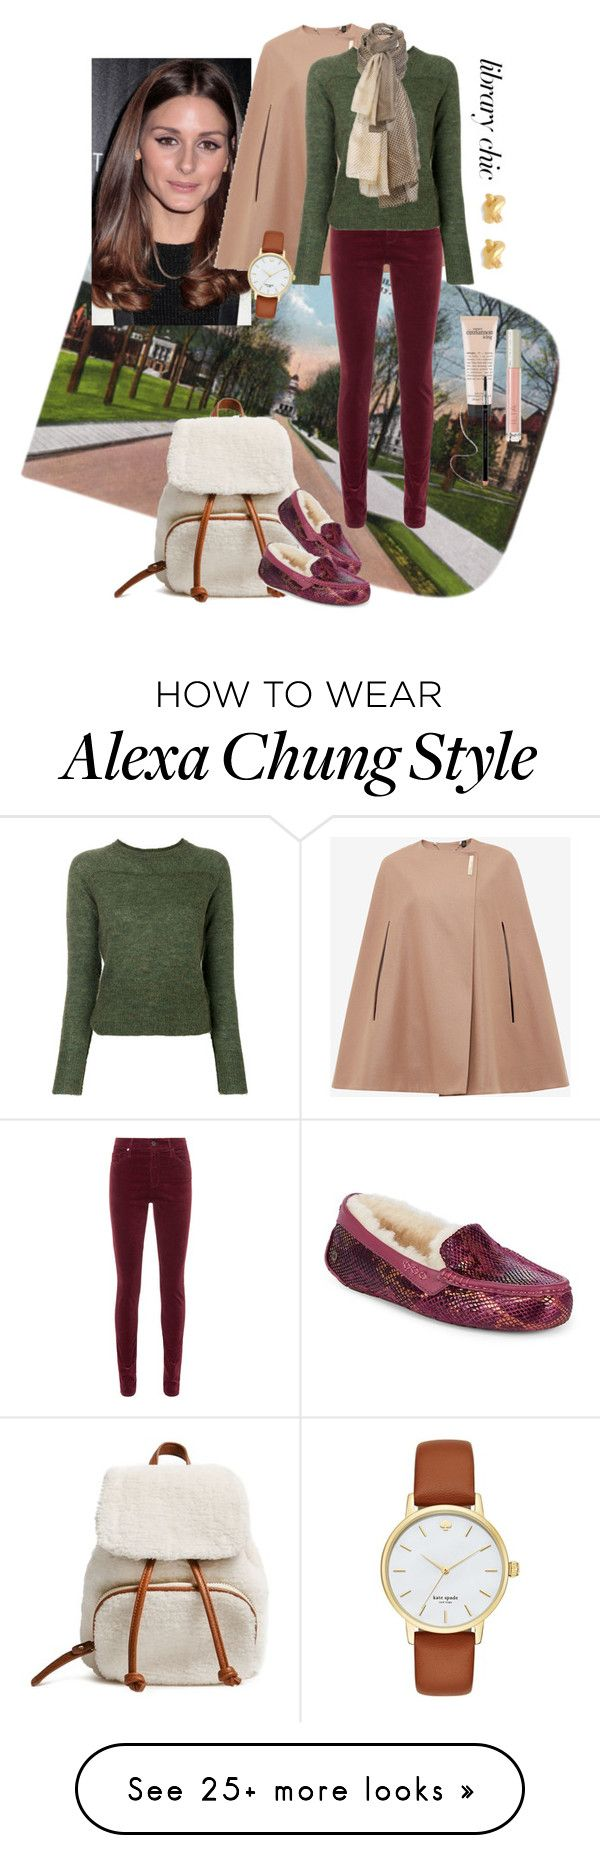 """Pants: Olive, Burgundy, Cream"" by henleysc on Polyvore featuring Rachel Zoe, Forever 21, Ted Baker, AG Adriano Goldschmied, Étoile Isabel Marant, UGG, Sylvia Alexander, Ilia, philosophy and Kate Spade"